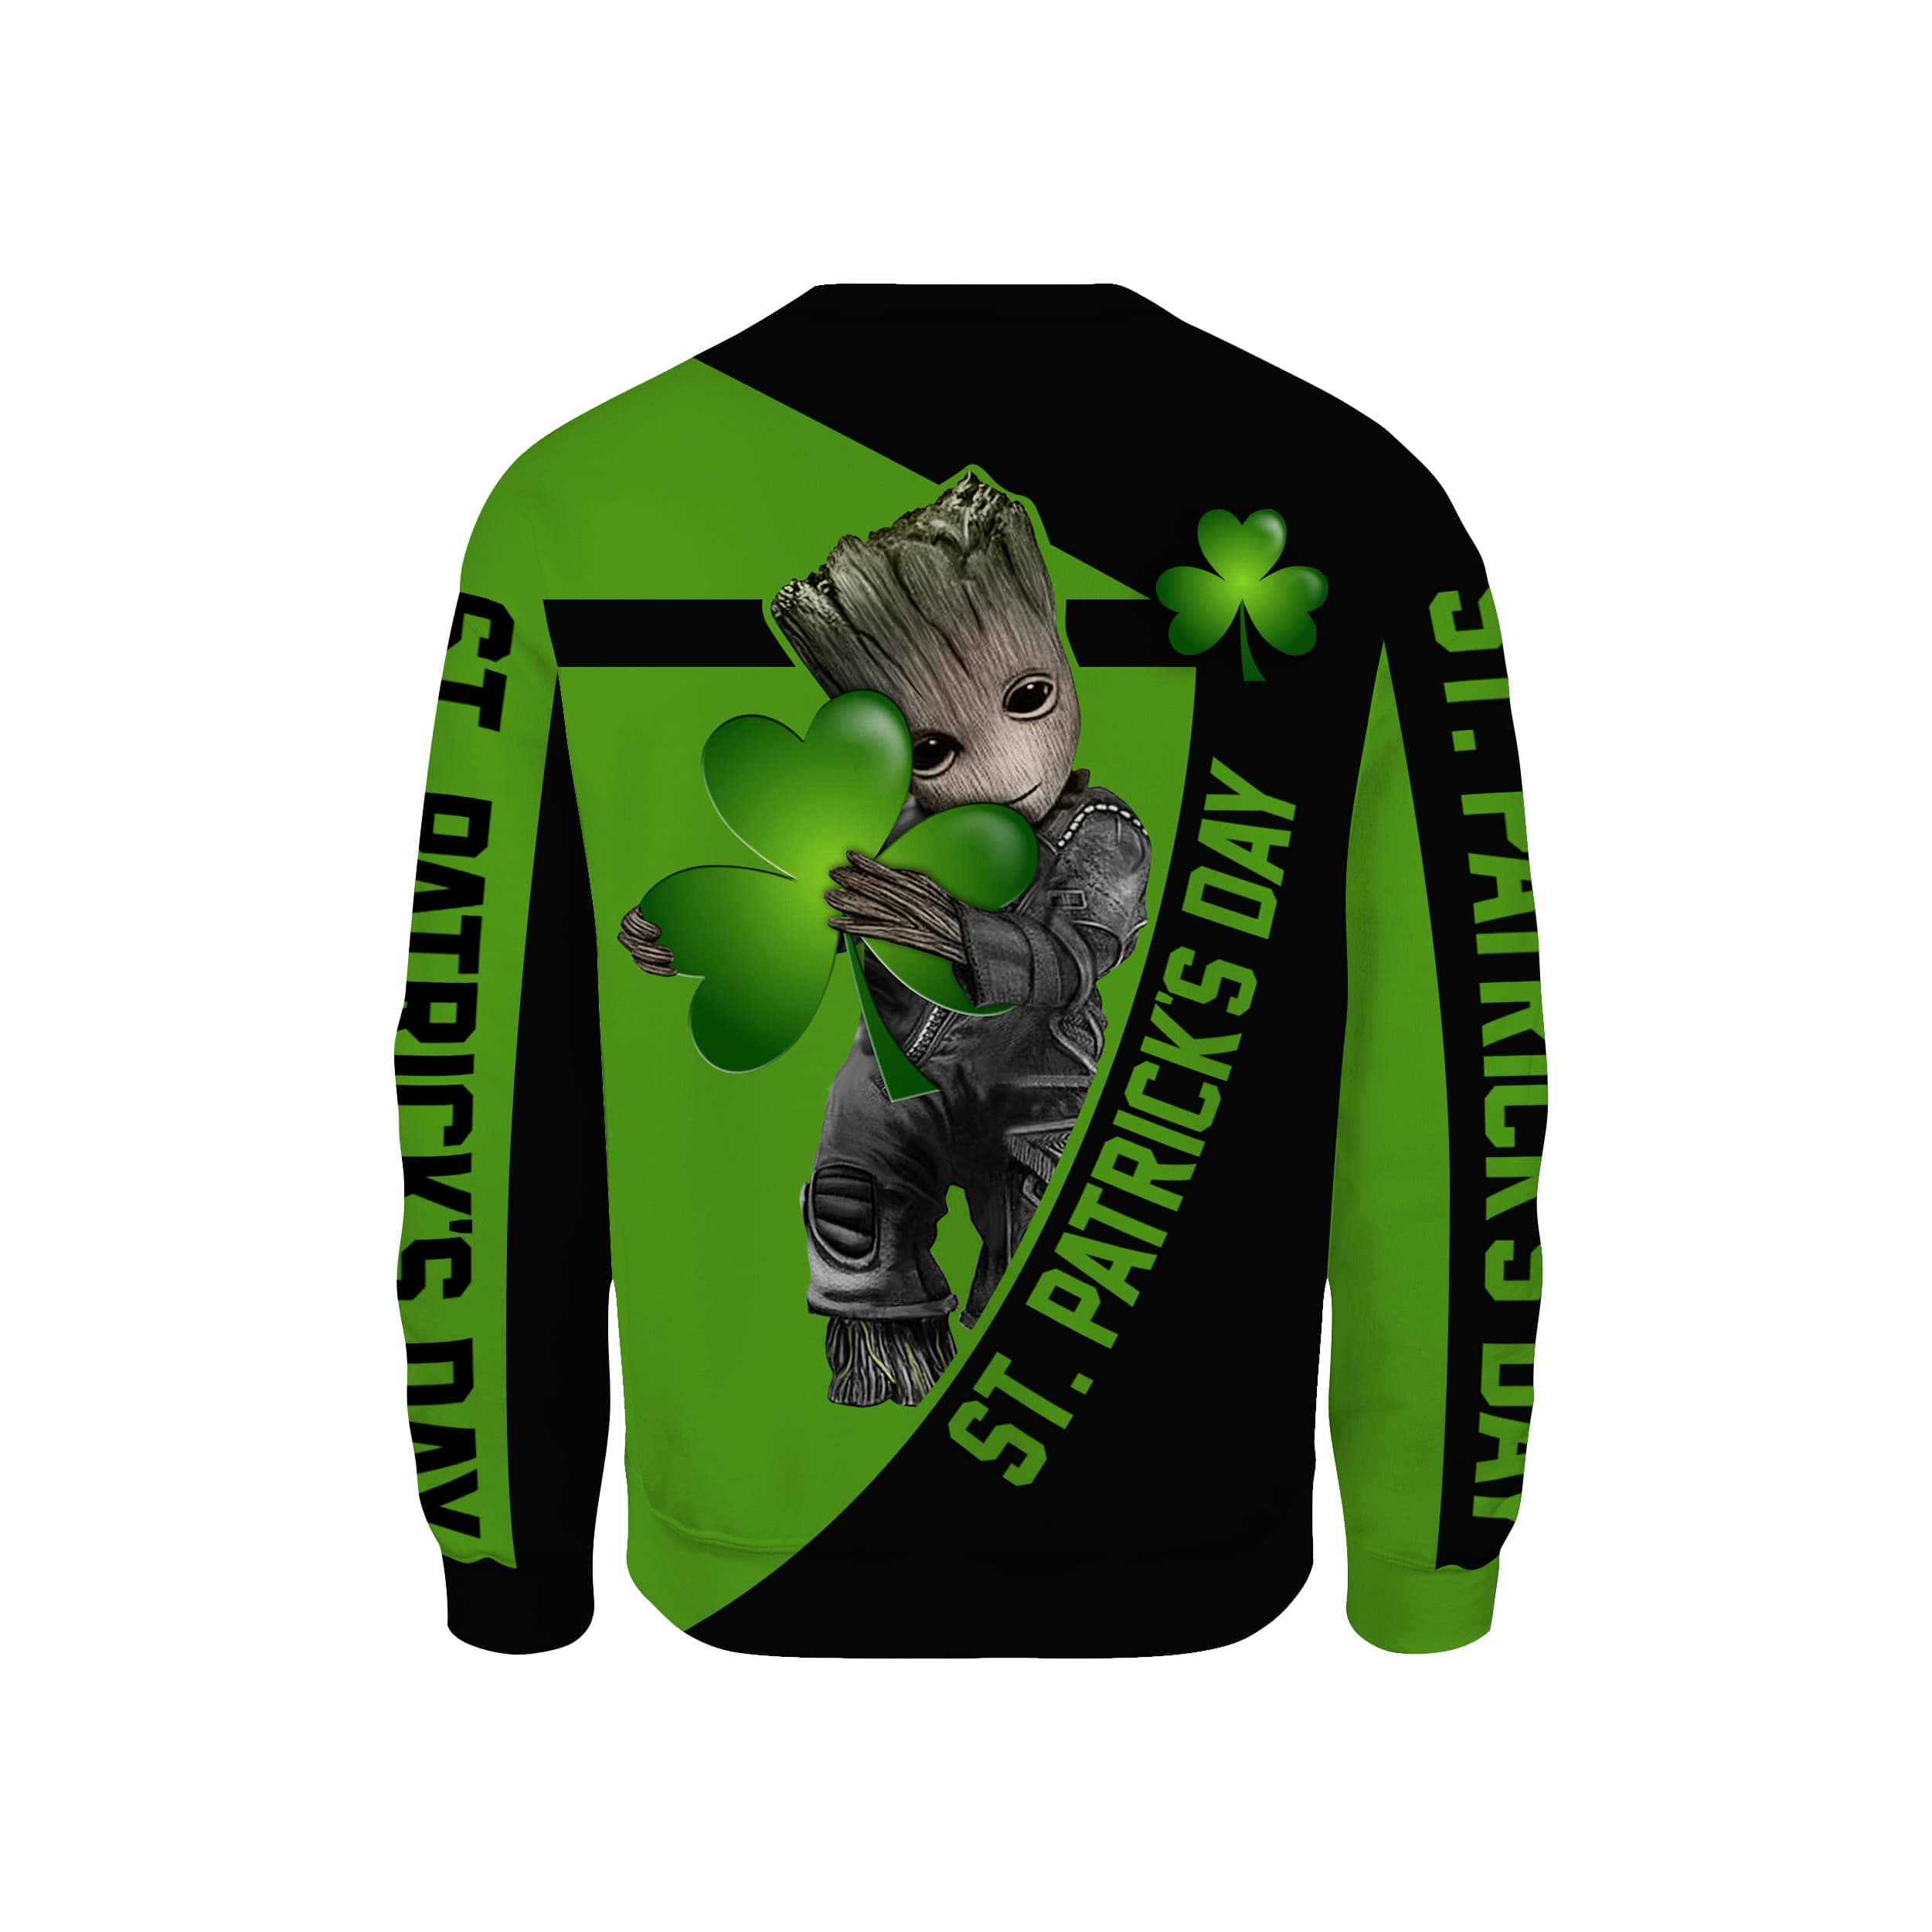 Irish saint patrick's day groot full printing sweatshirt - back